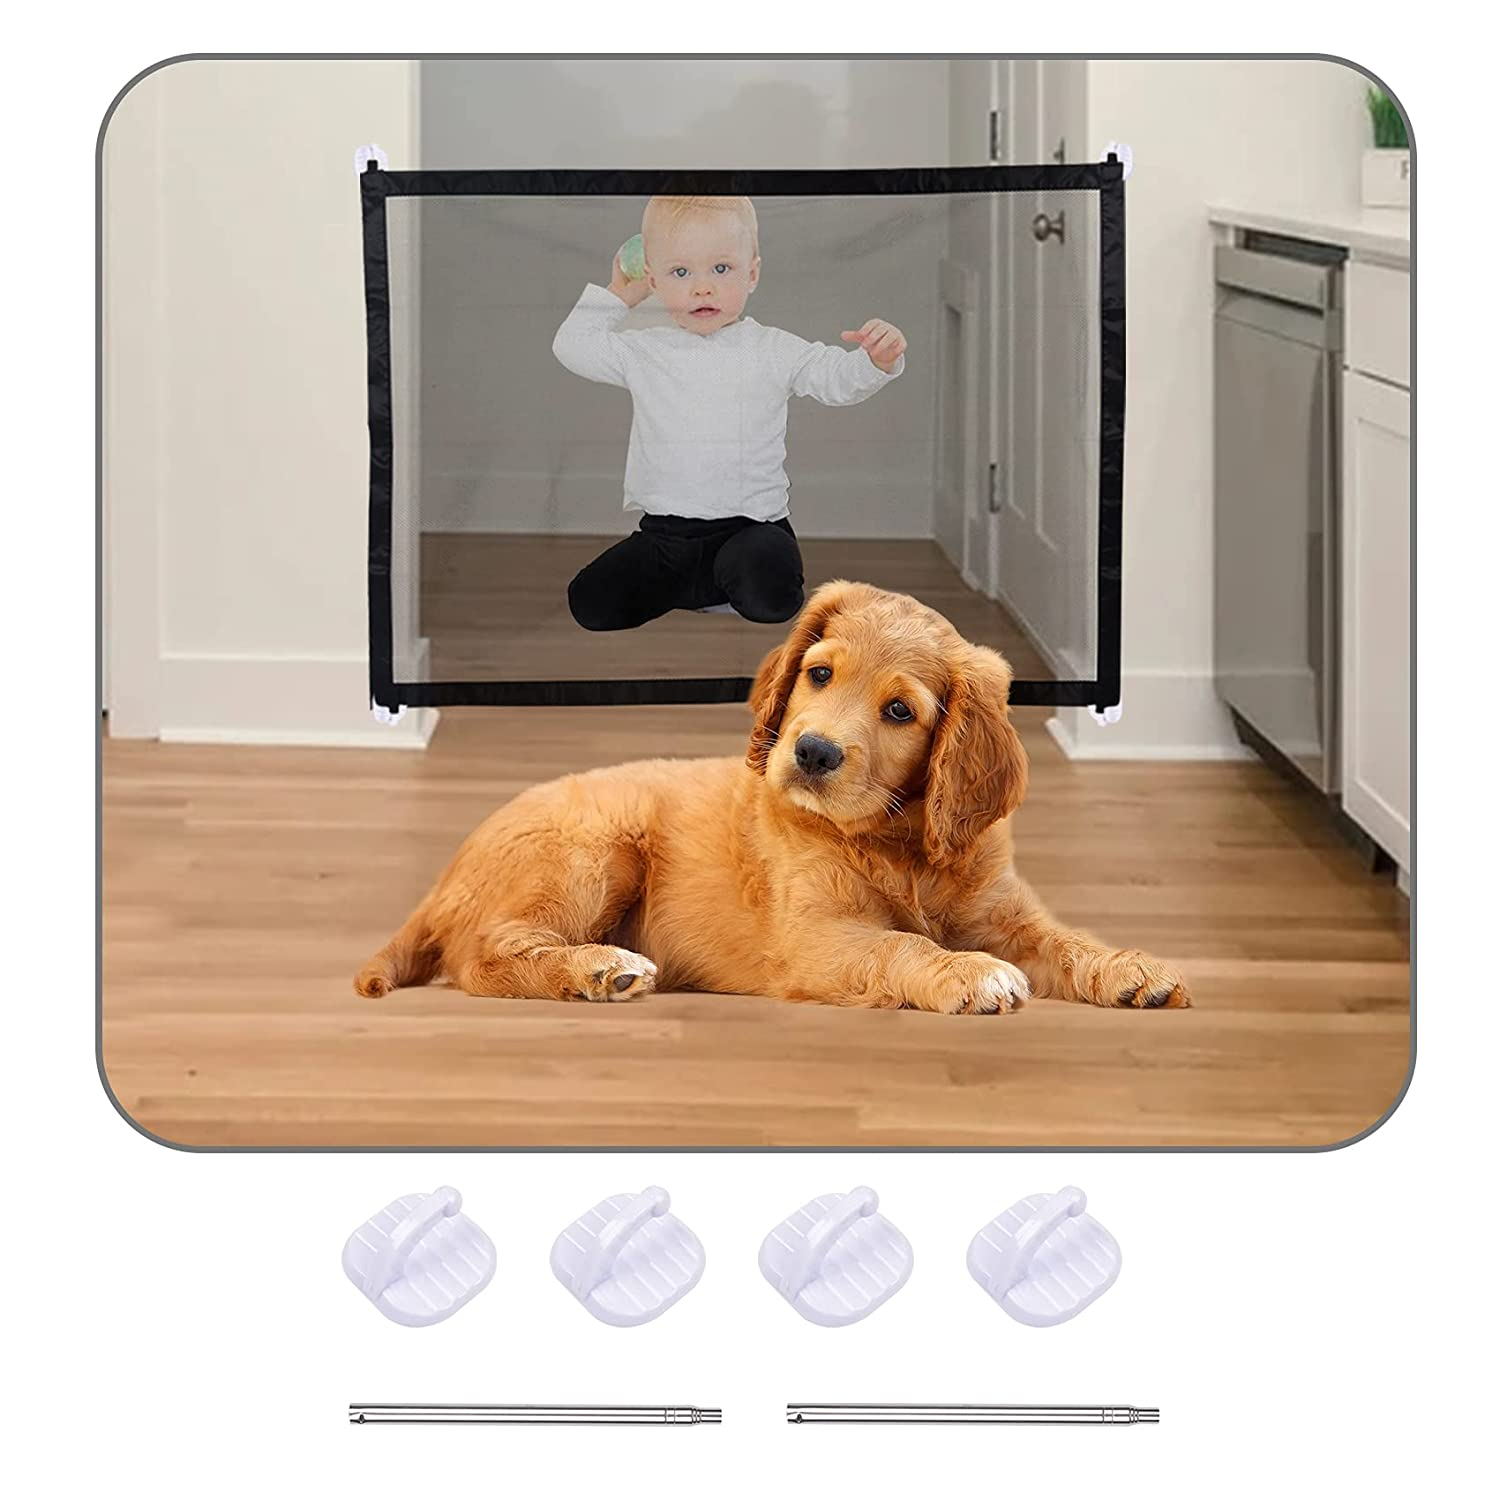 Pet Safety Guard Mesh Dog Gate, Foldable Pet Safety Fence Portable Dogs Enclosure Protection Net with 4 Hooks, Pet Gate Magic Gate for Dogs for Install Anywhere for Hall Doorway and Stair